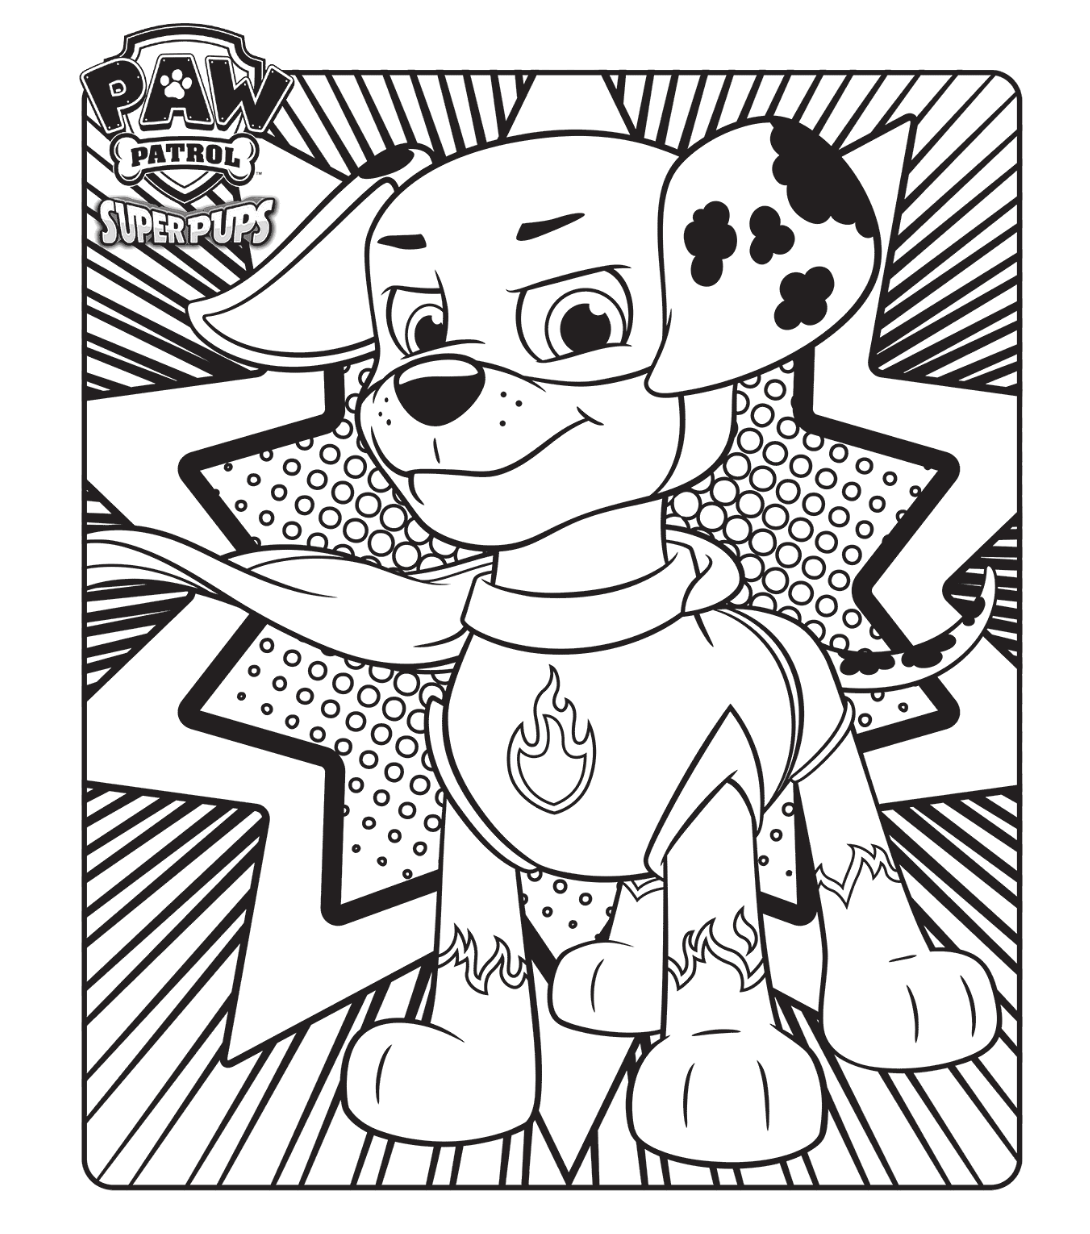 PAW Patrol Super Pups Colouring Page | Mal- und ...